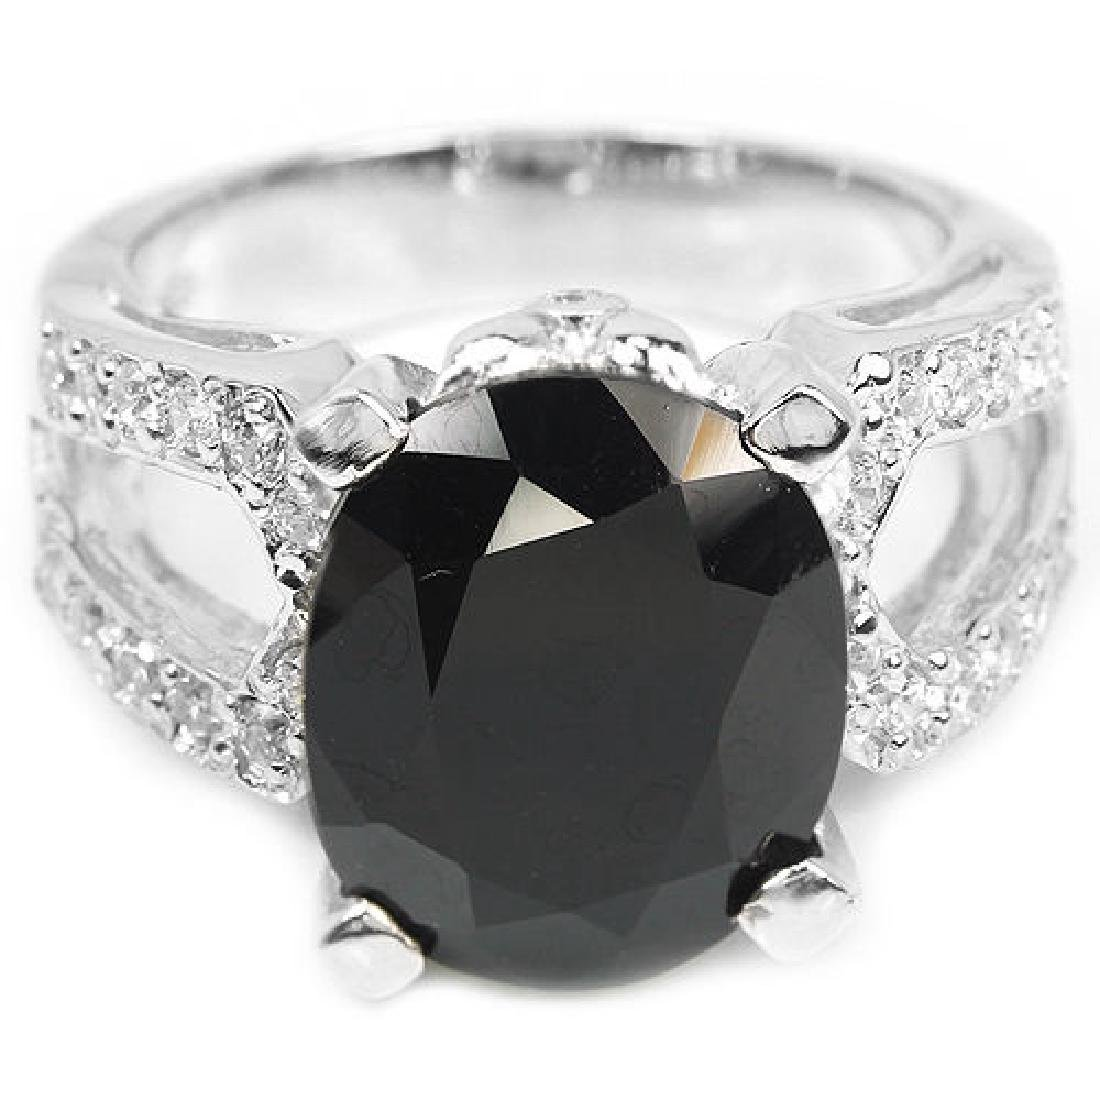 Natural Black Spinel 35 Carats Ring